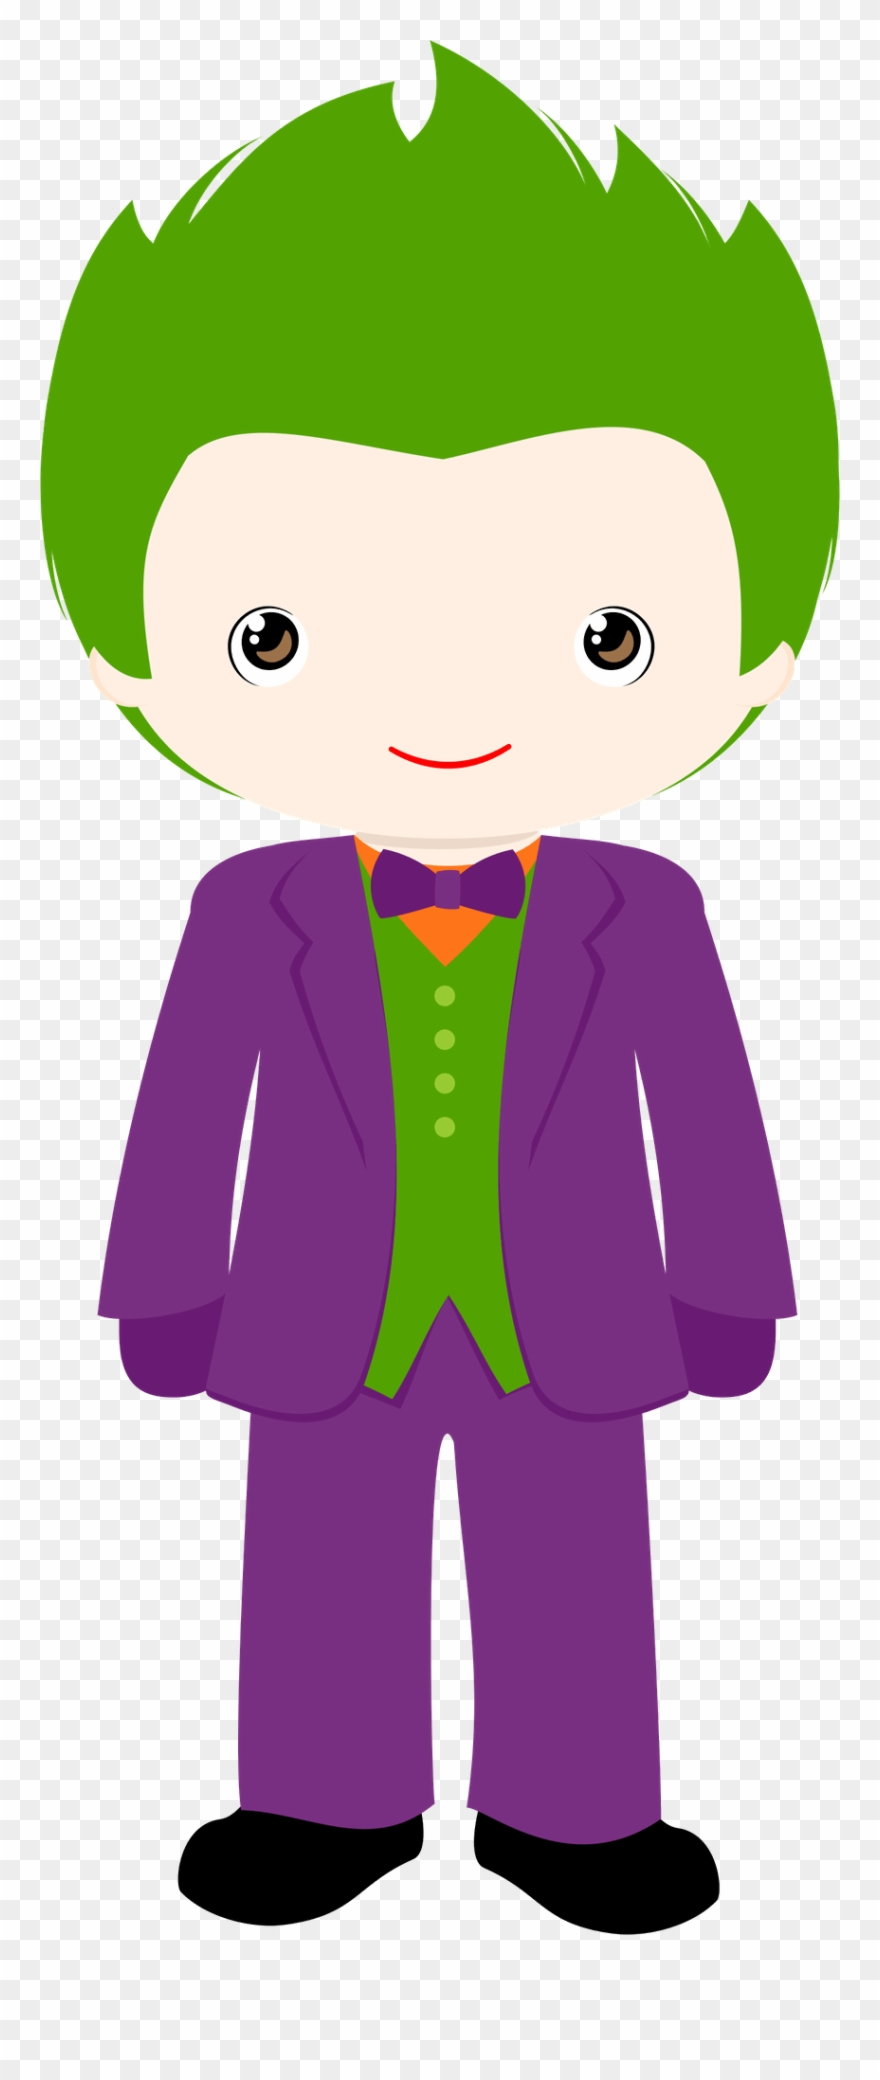 Joker Clipart for you.